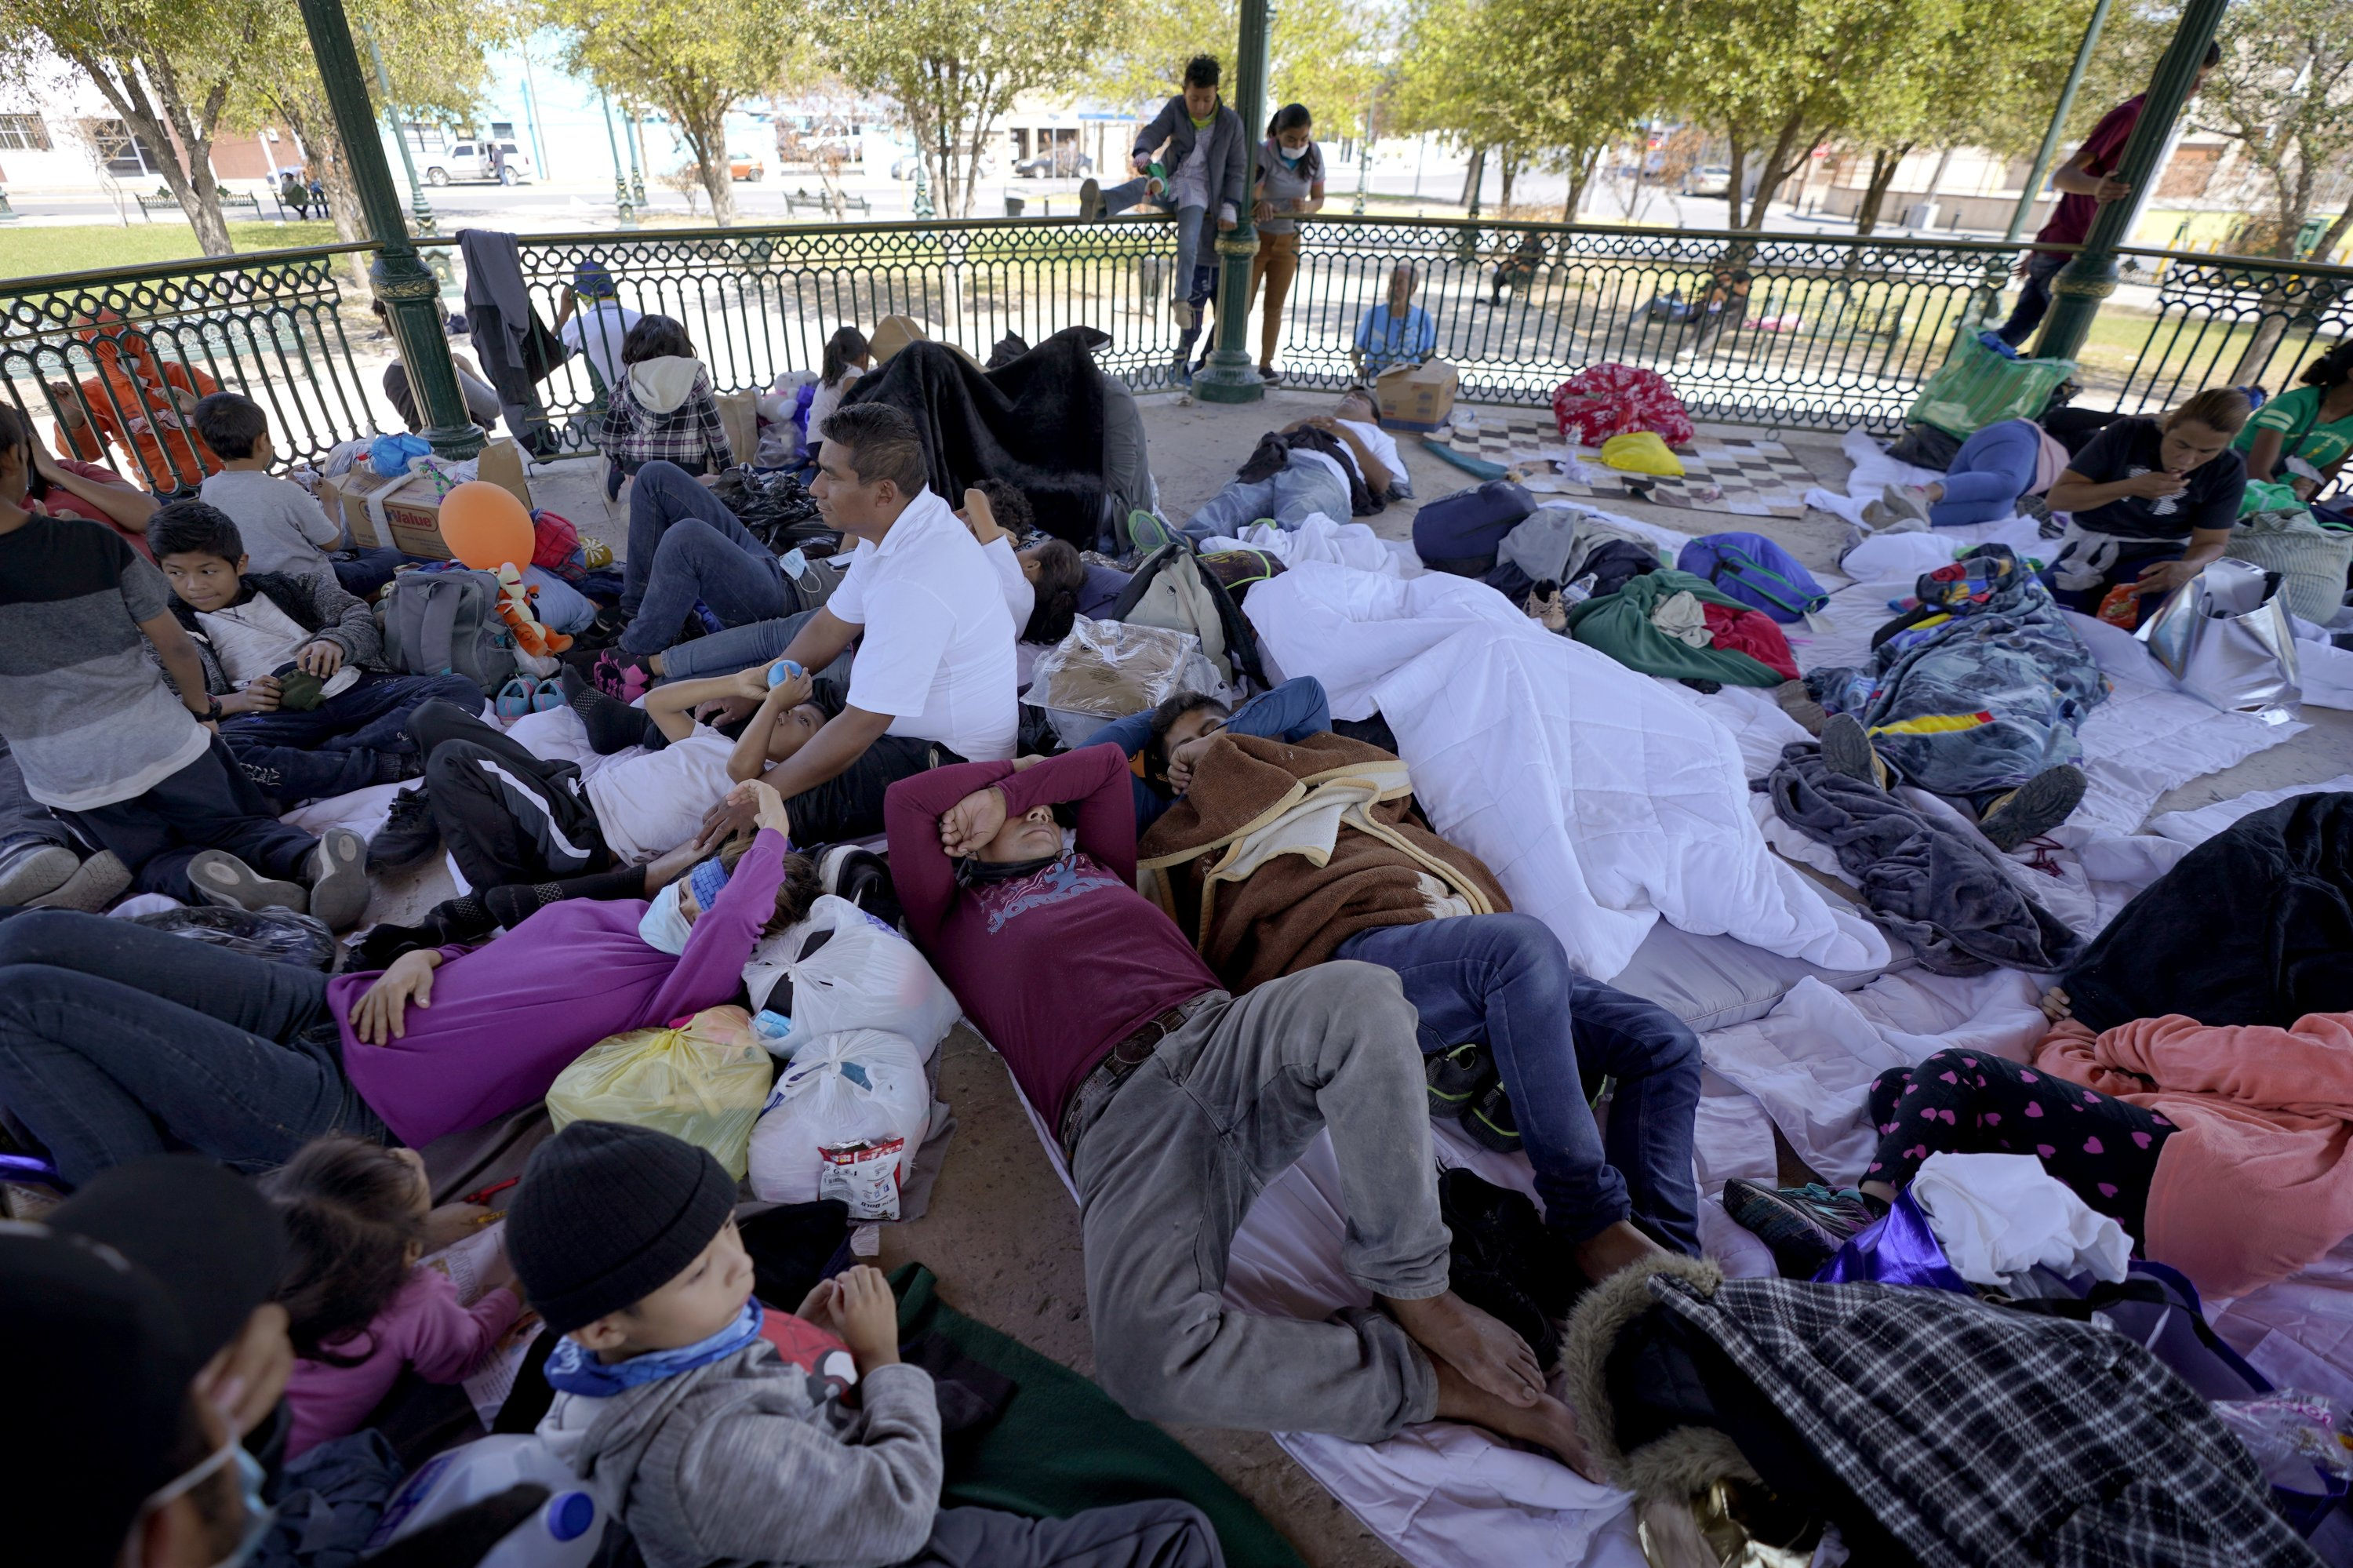 A group of migrants rests on a gazebo at a park after they were expelled from the U.S. and pushed by Mexican authorities off an area where they had been staying, in Reynosa, Mexico, March 20, 2021. (AP Photo/Julio Cortez)